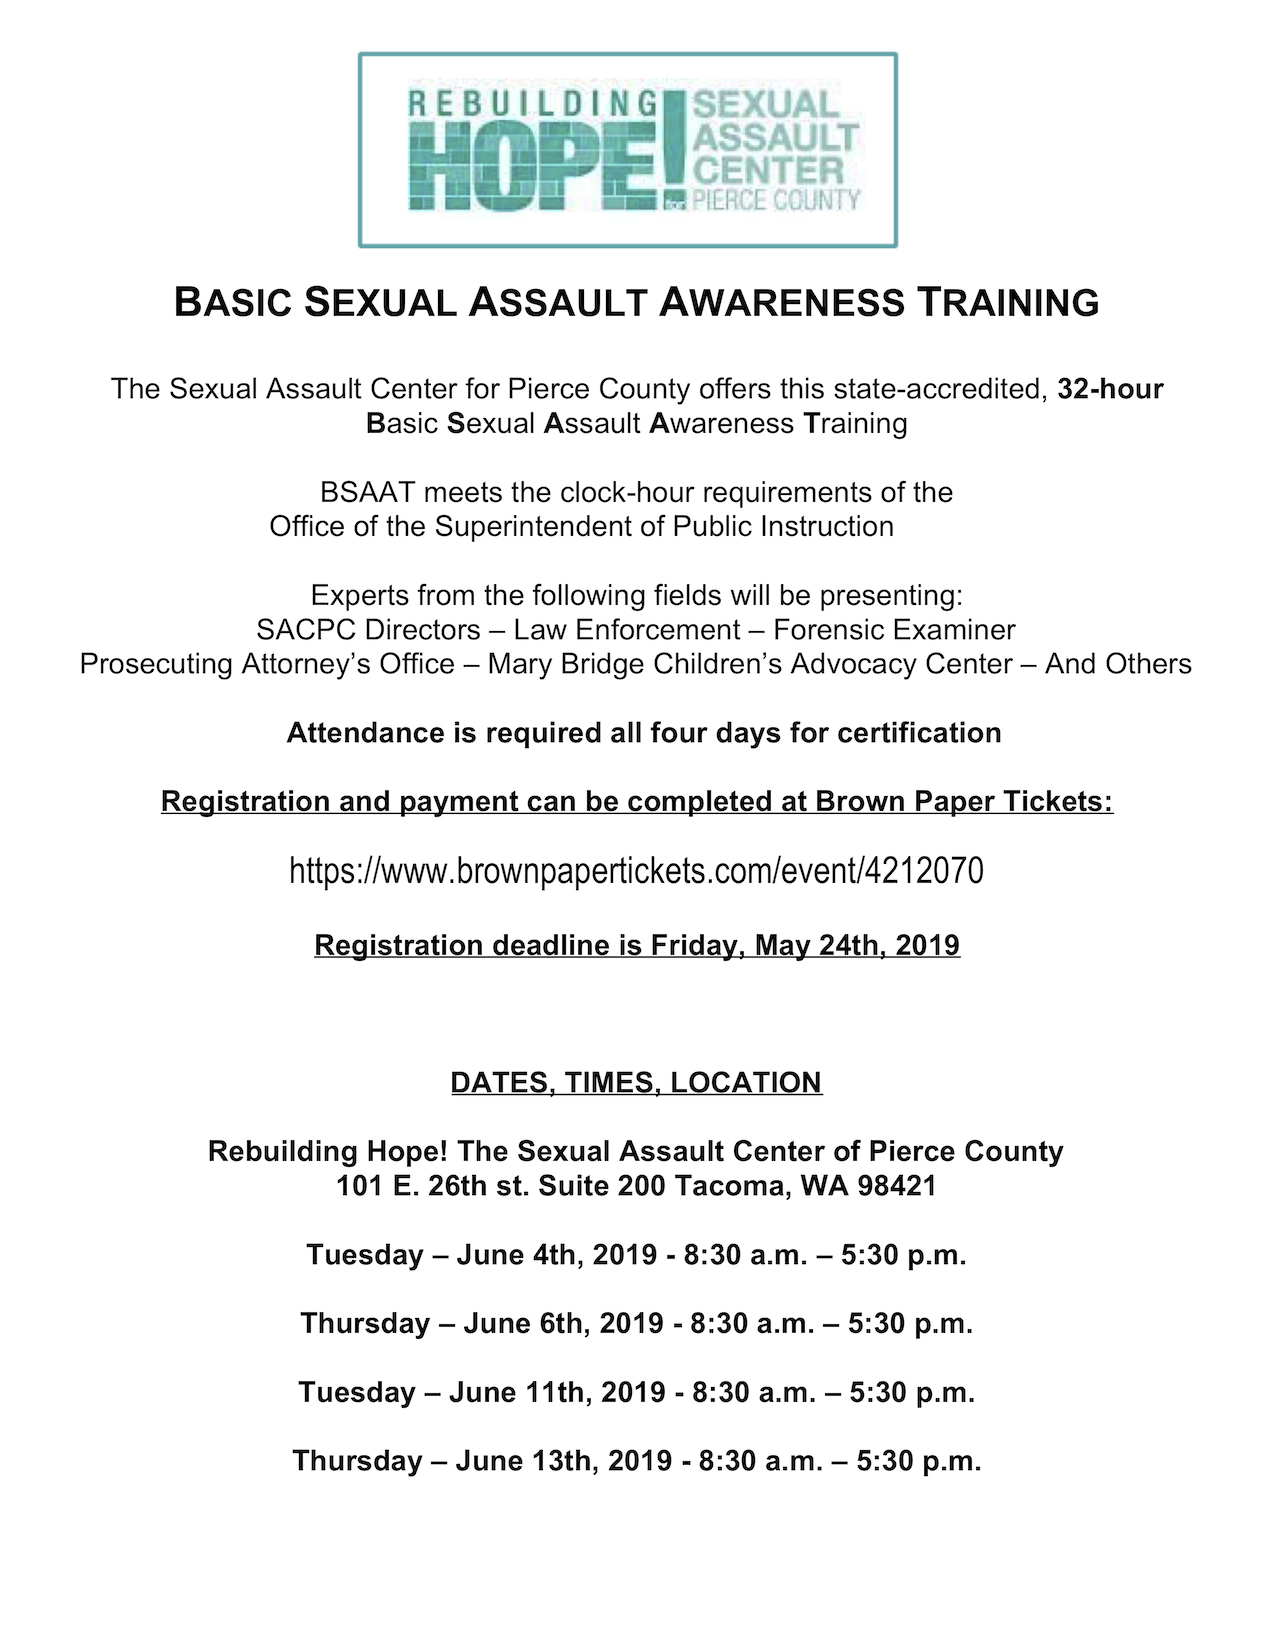 June 2019 Basic Sexual Assault Awareness Training